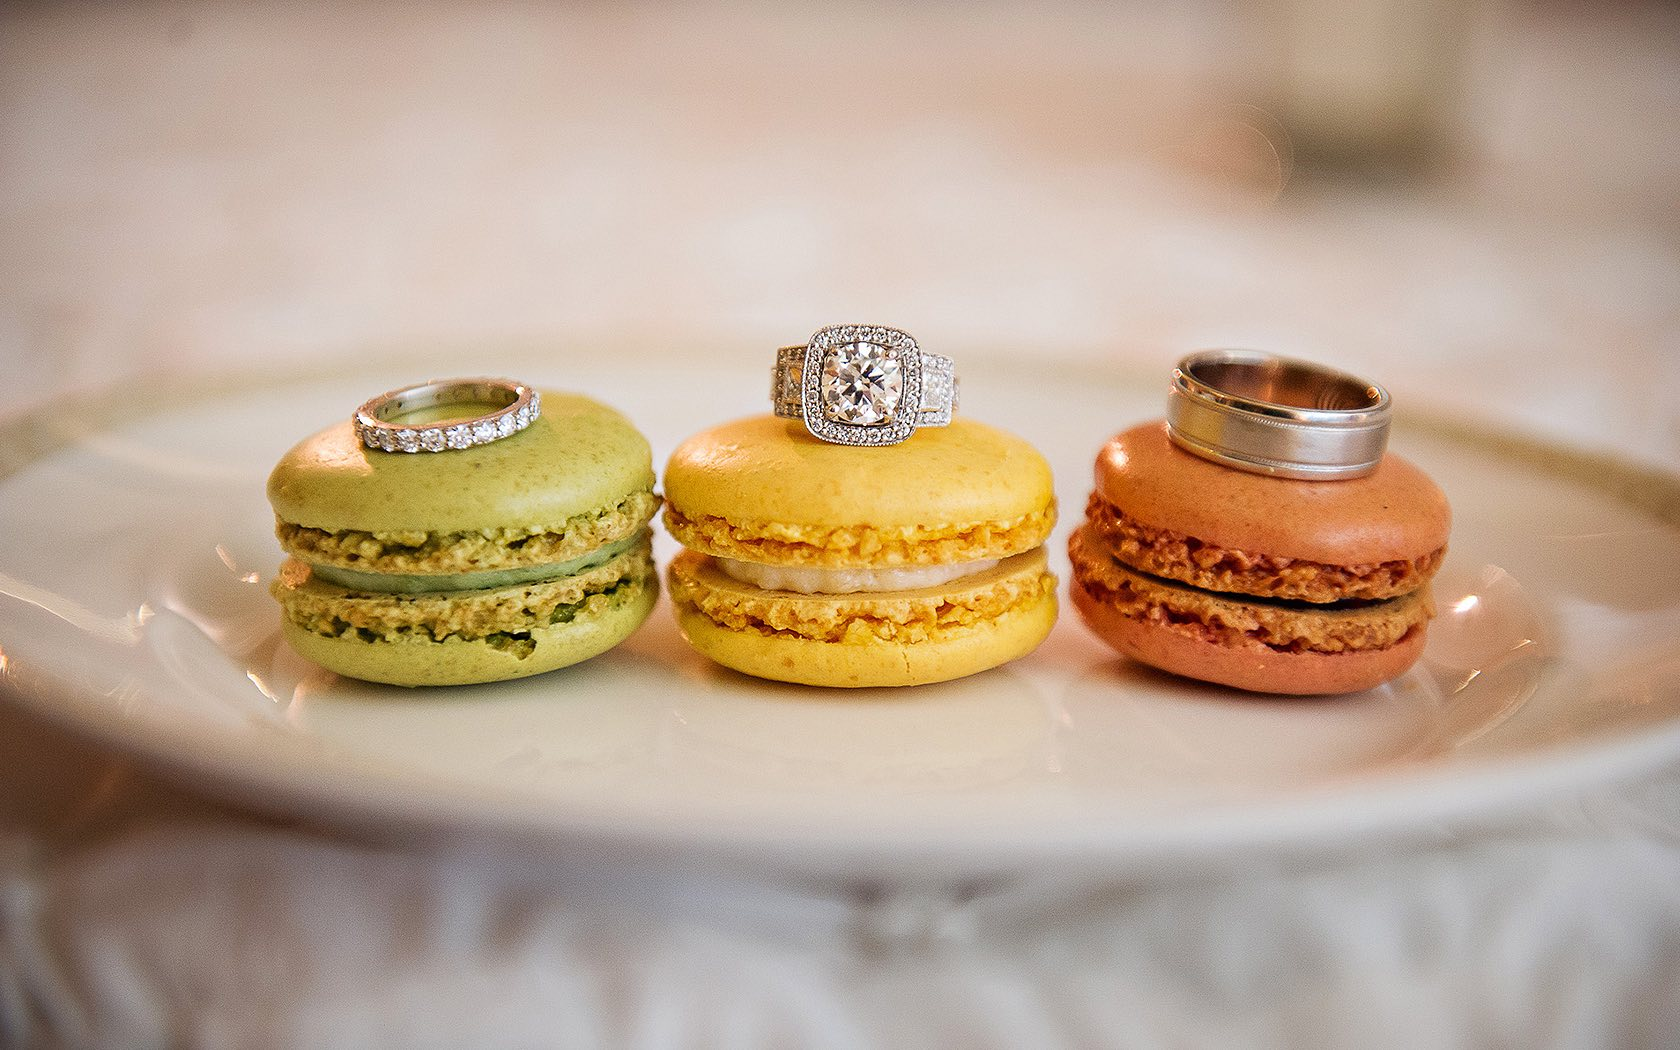 green, yellow, and brown macaron cookies with rings sitting atop them